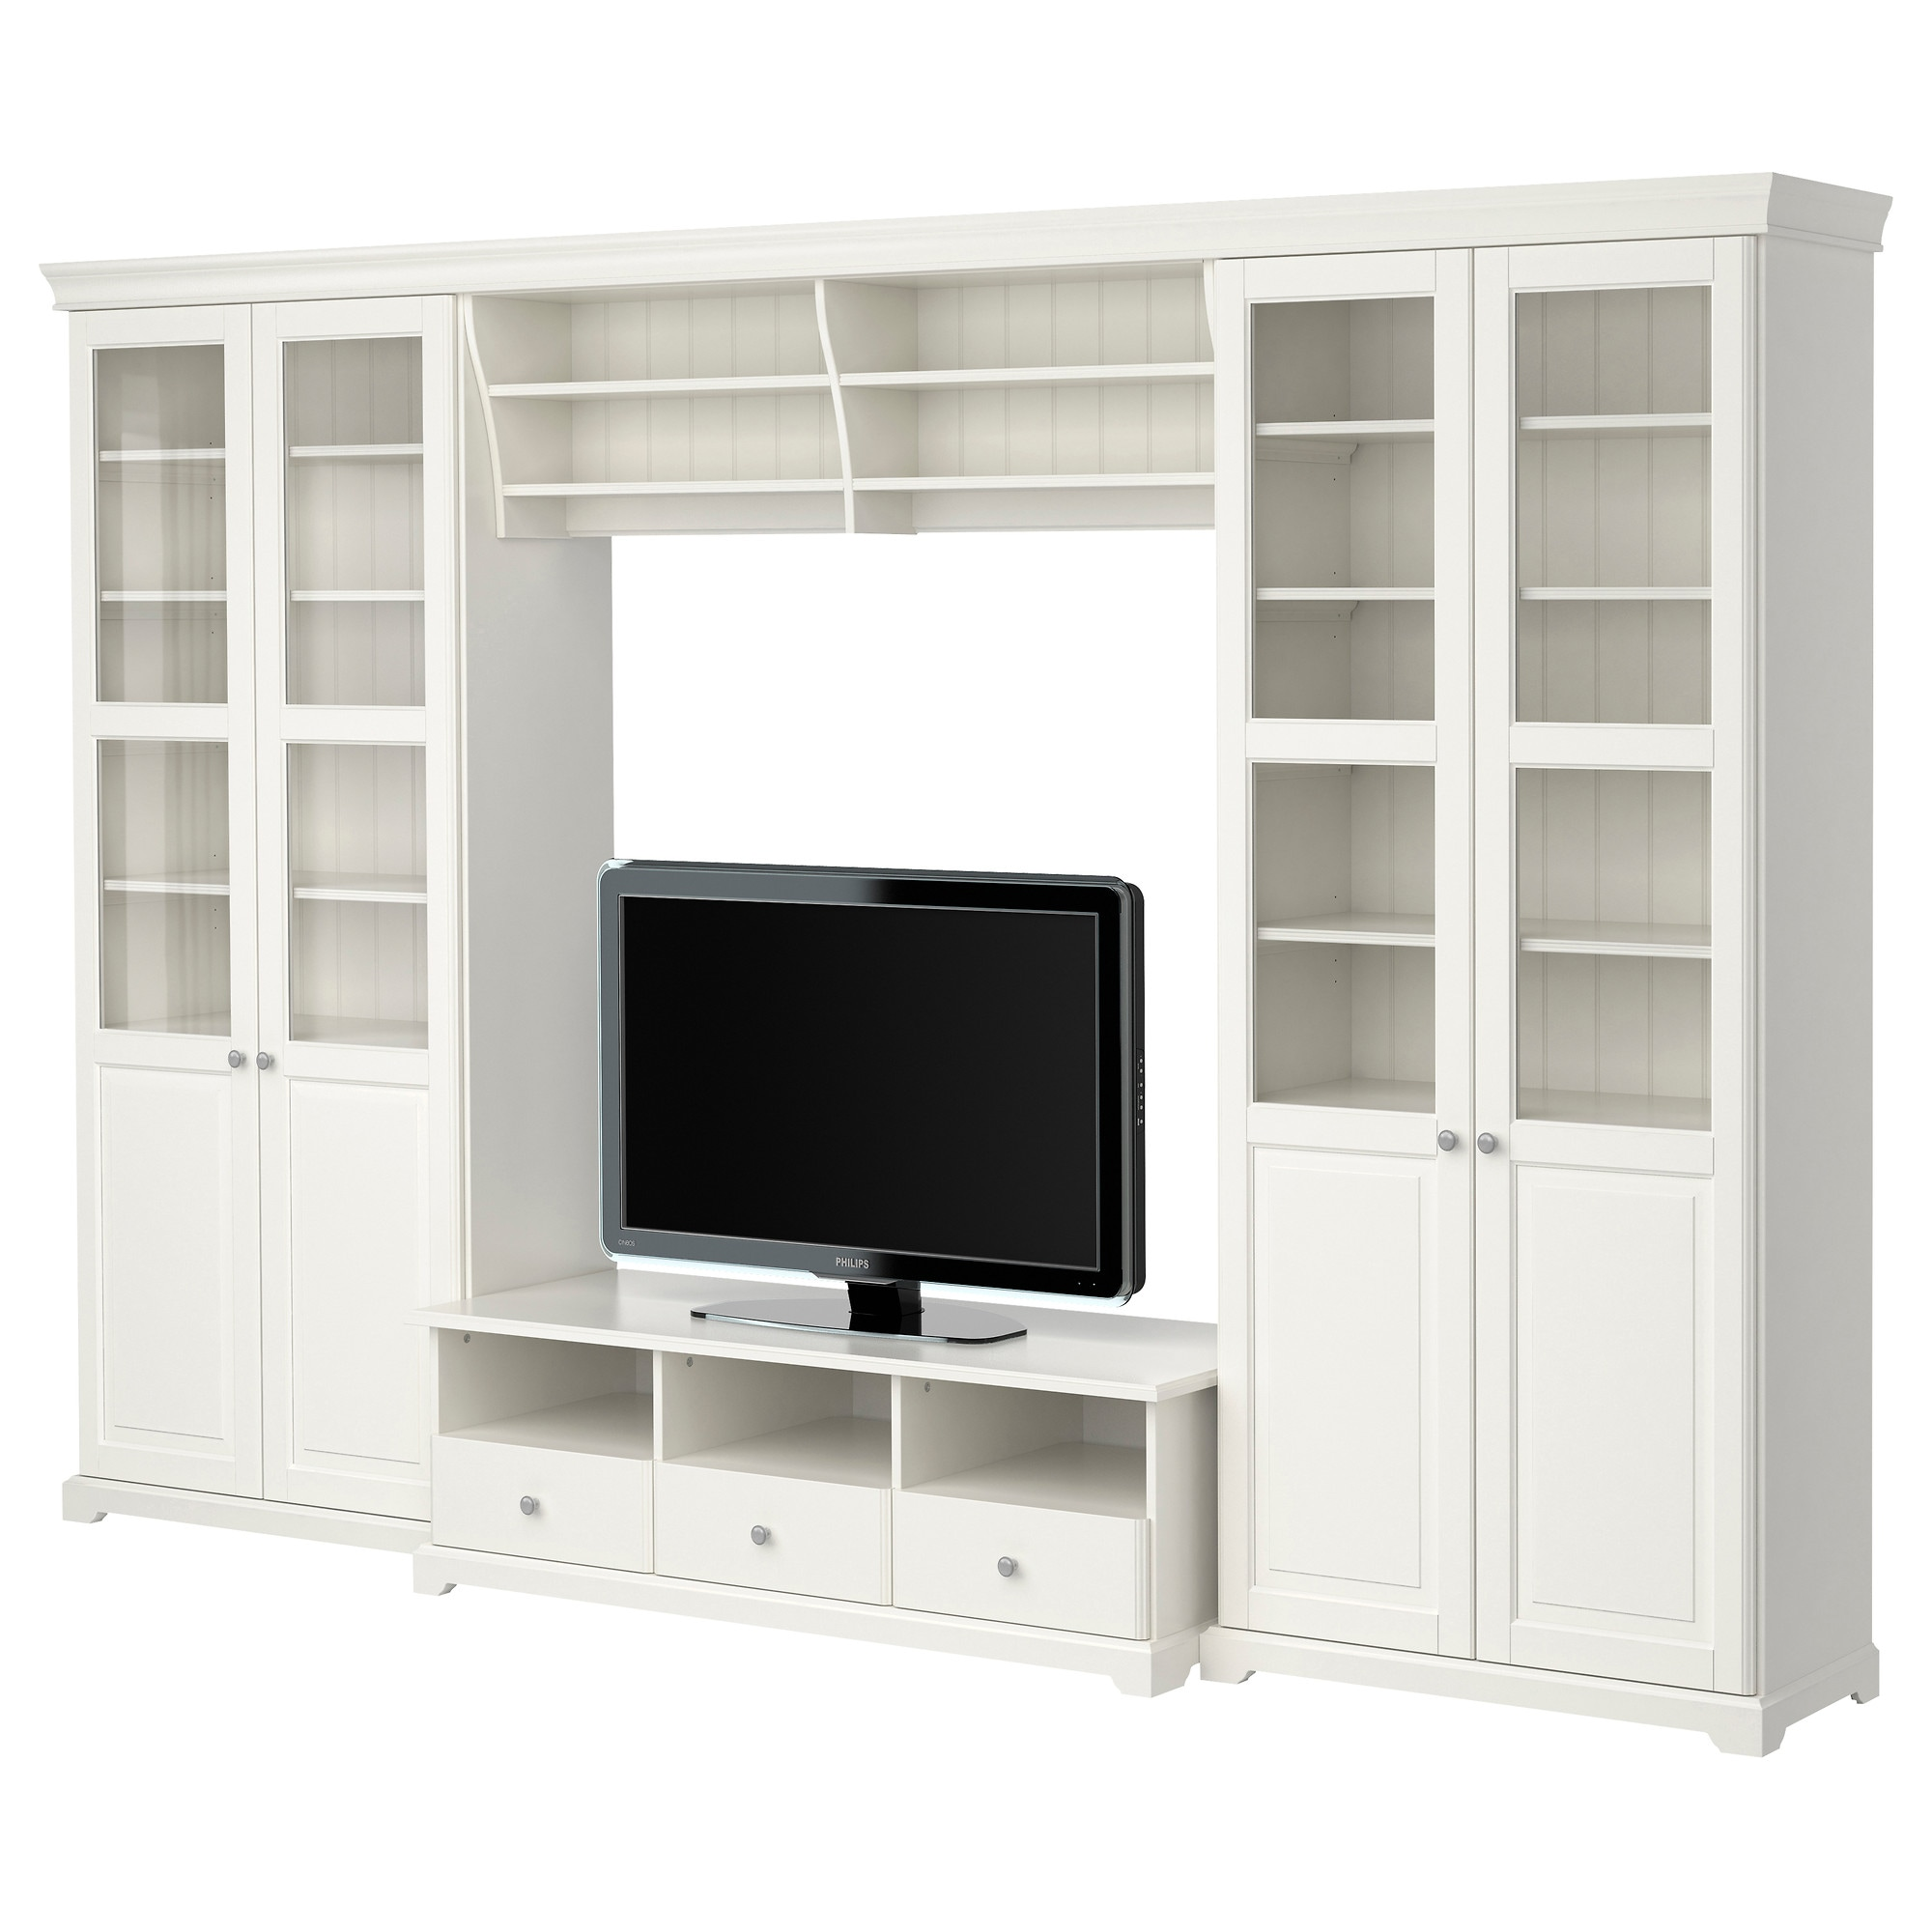 tv media furniture – tv stands cabinets  media storage  ikea - liatorp tv storage combination white width    height